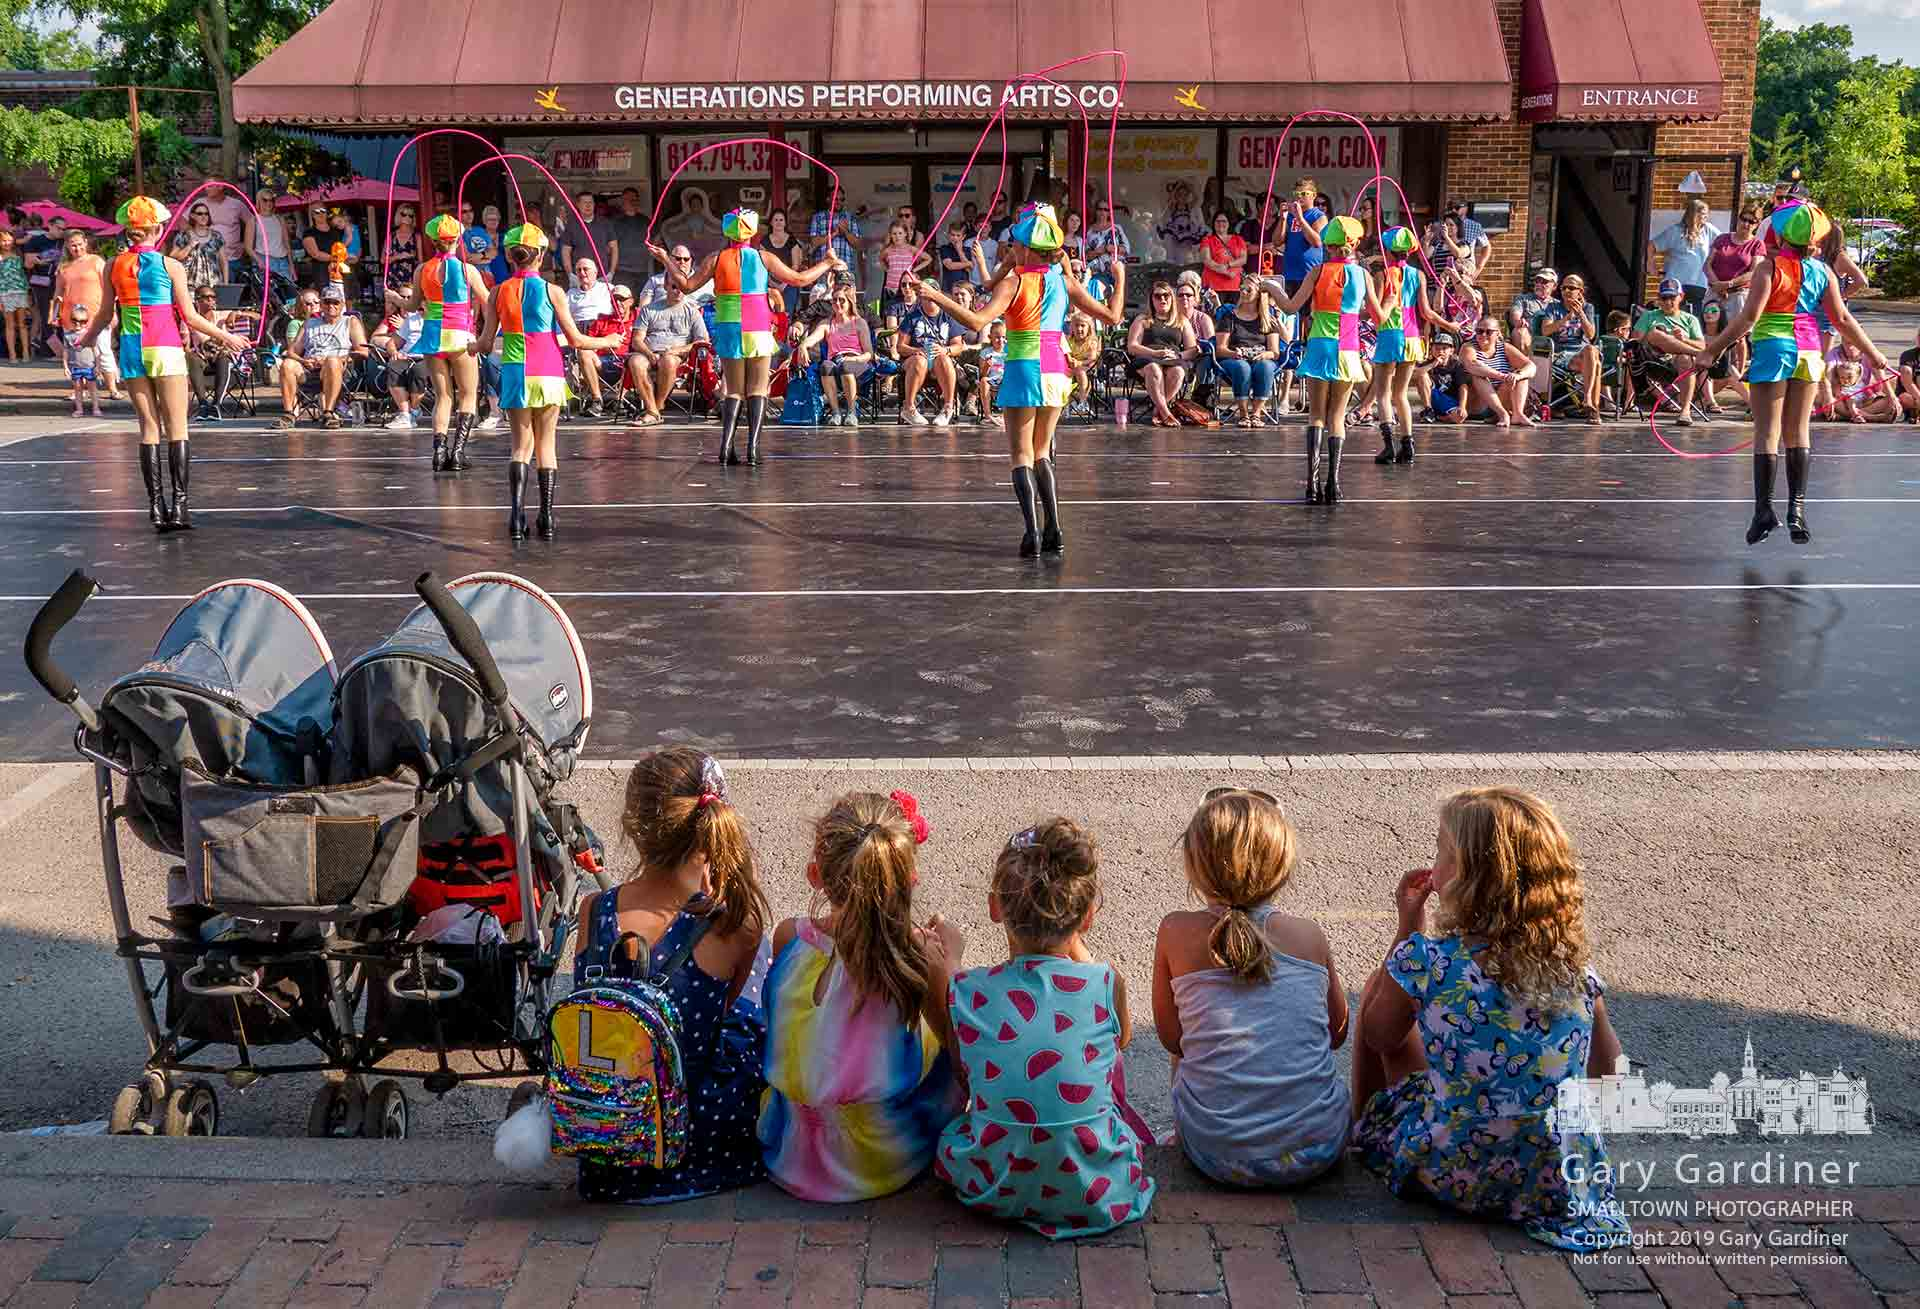 A group of young girls watch from the curb as an older group dances on West College during the Fourth Friday street festival in Uptown Westerville. My Final Photo for July 26, 2019.